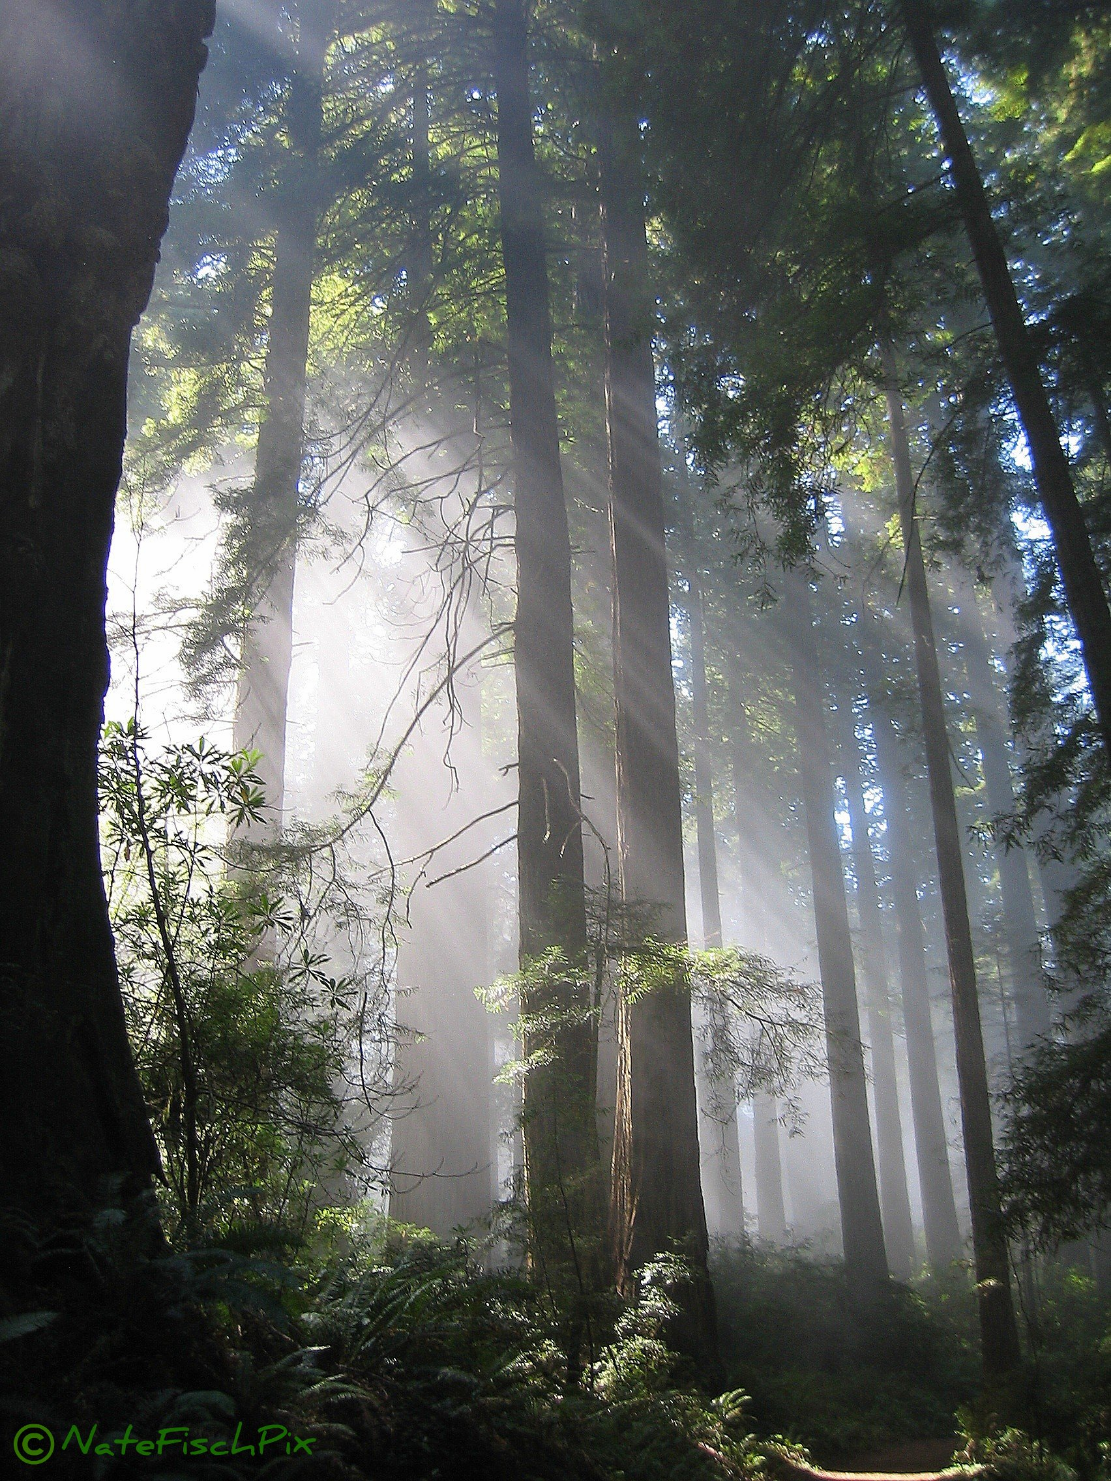 Redwood National Forest Nathan Fischer2006 8.5x11, 11x14 or custom